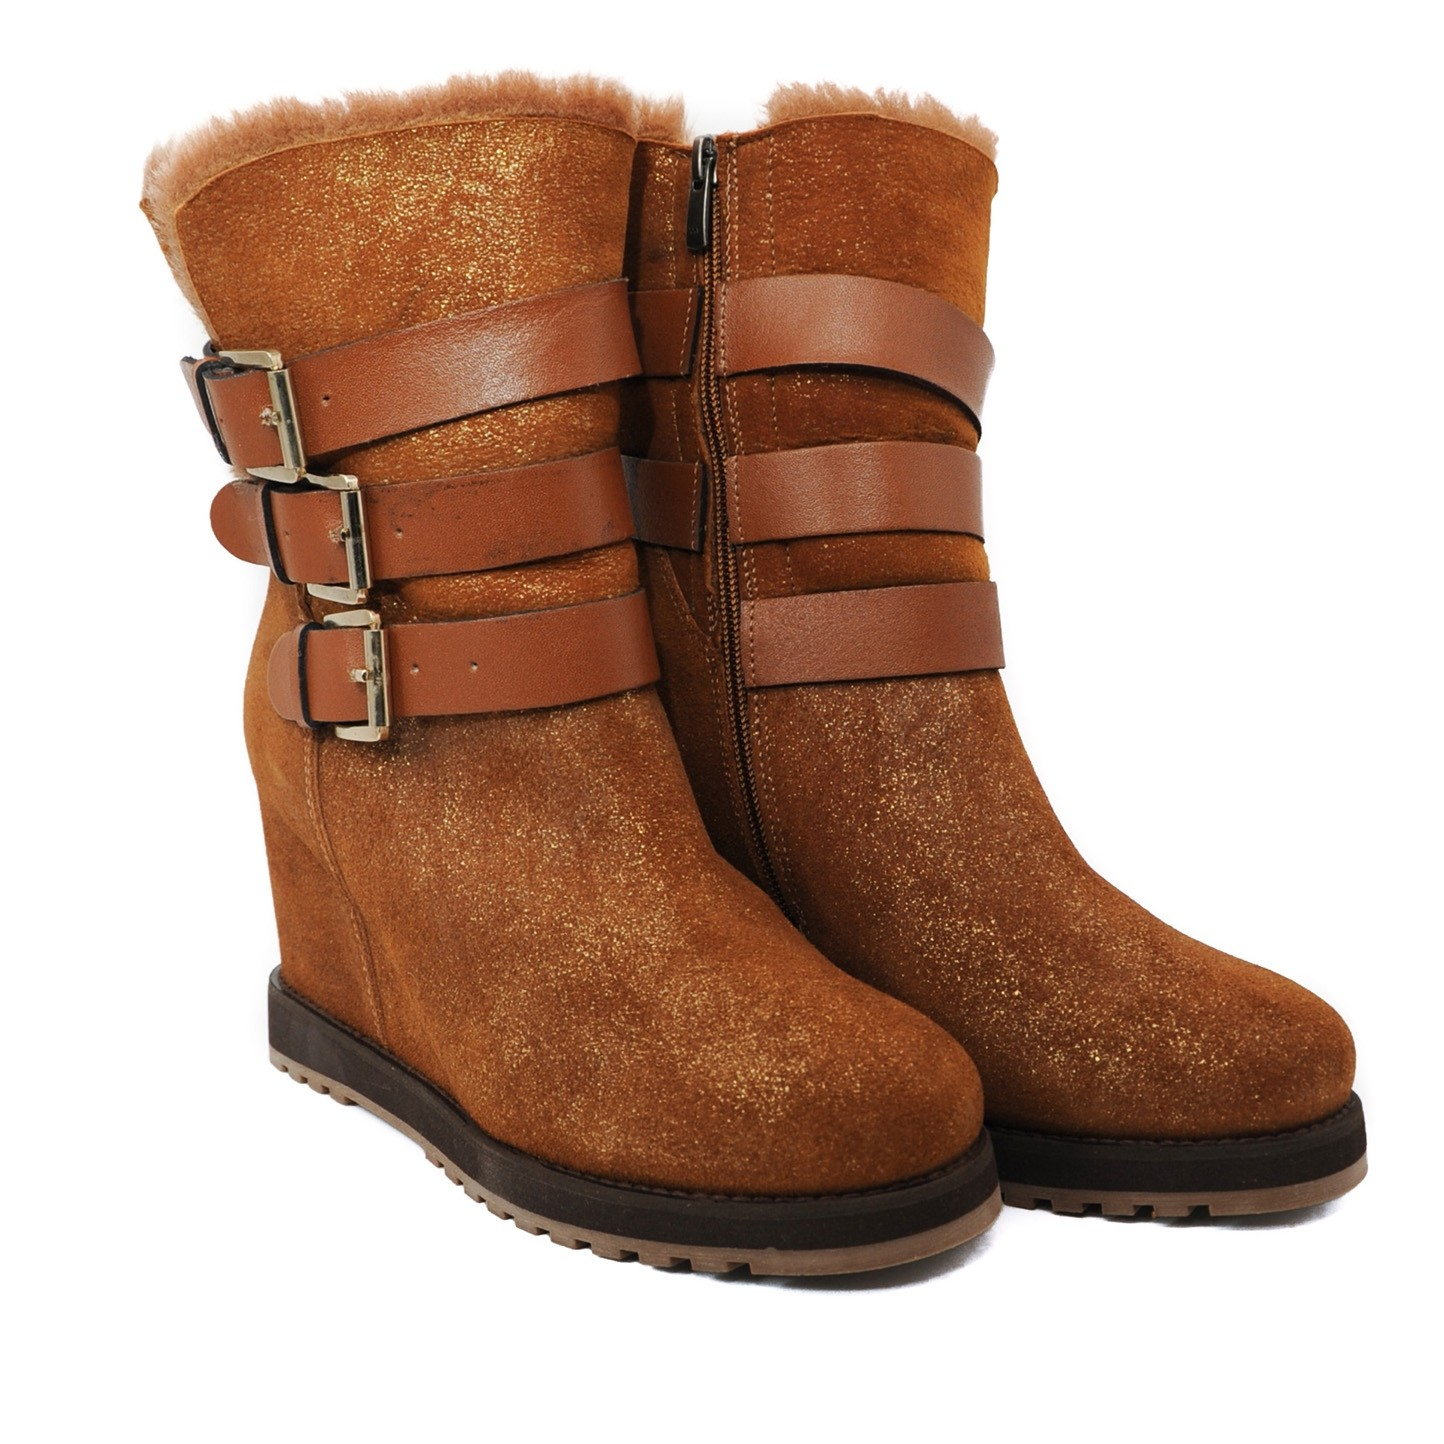 Pegia Buckled Leather Boots with Genuine Woolmarked Sheepskin Lining for Style and Comfort - Tan